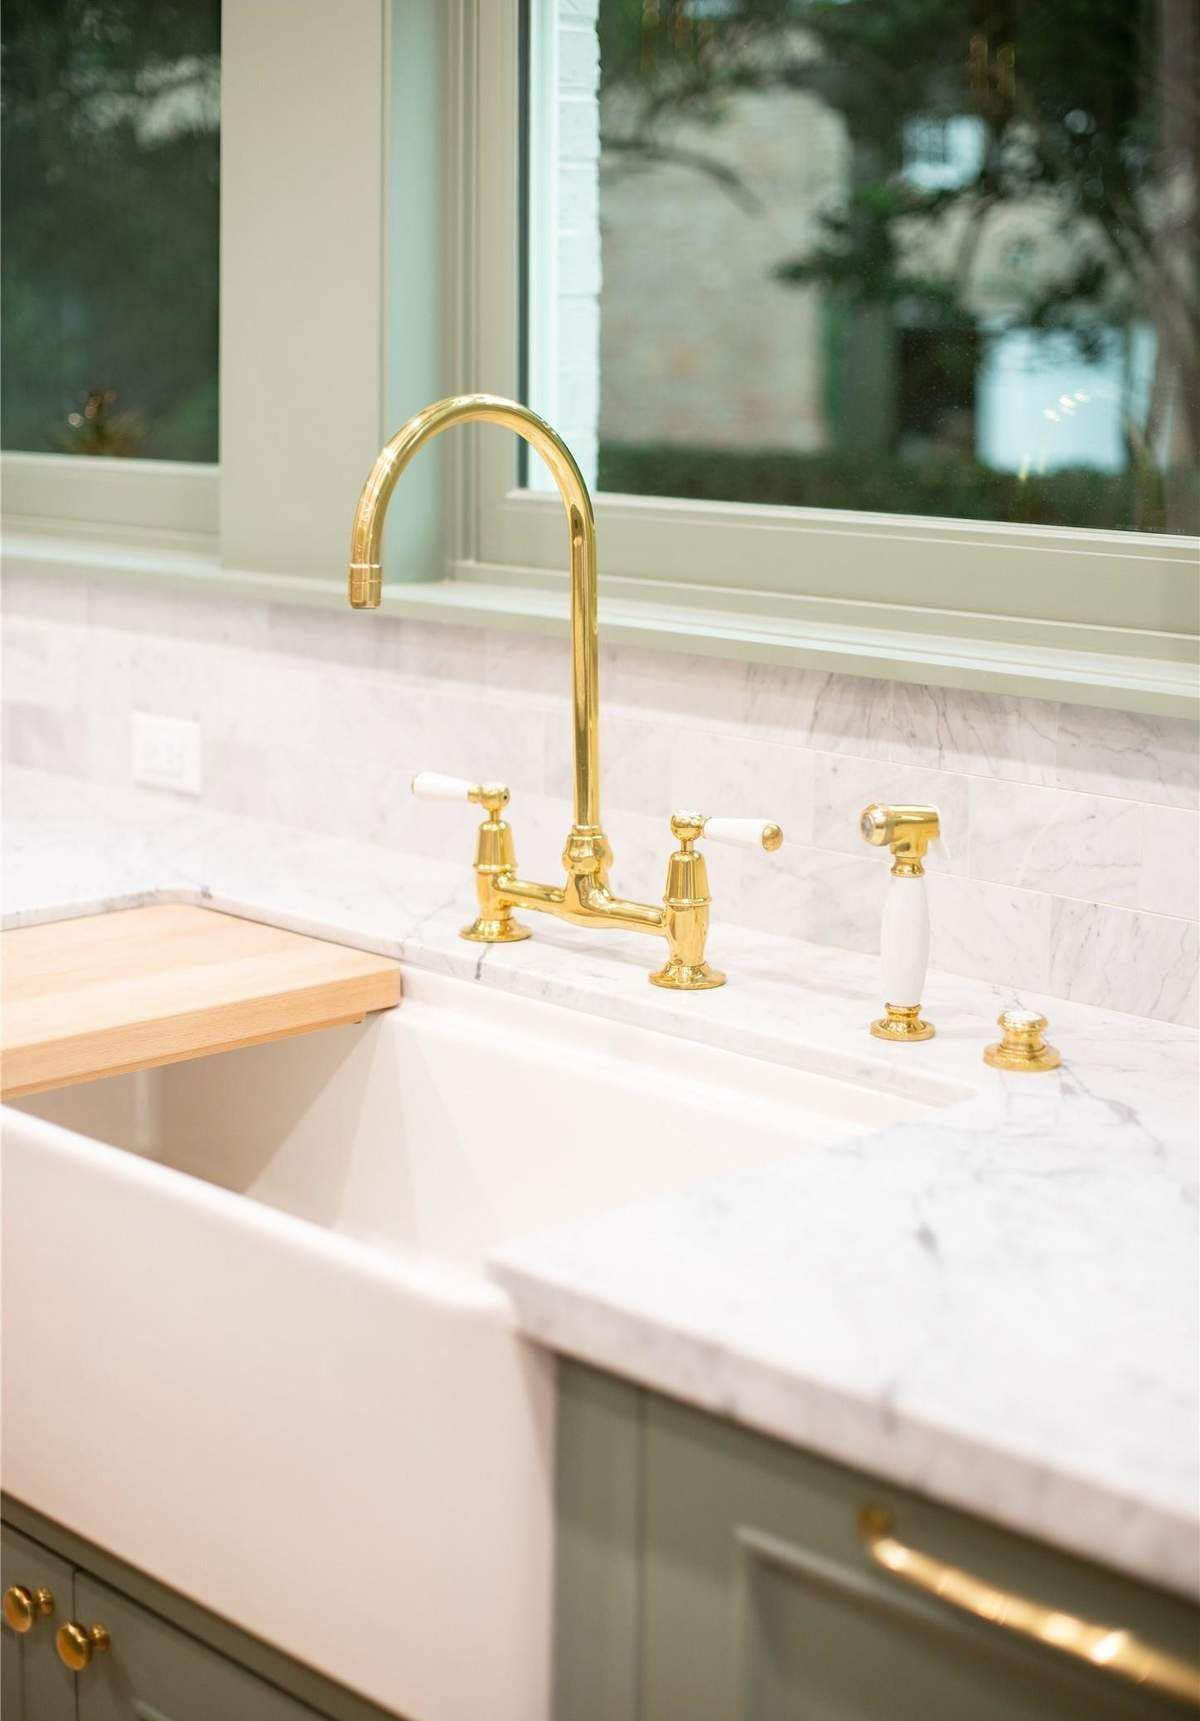 closeup view of a white enamel farmhouse kitchen sink with gold faucet and green cabinets